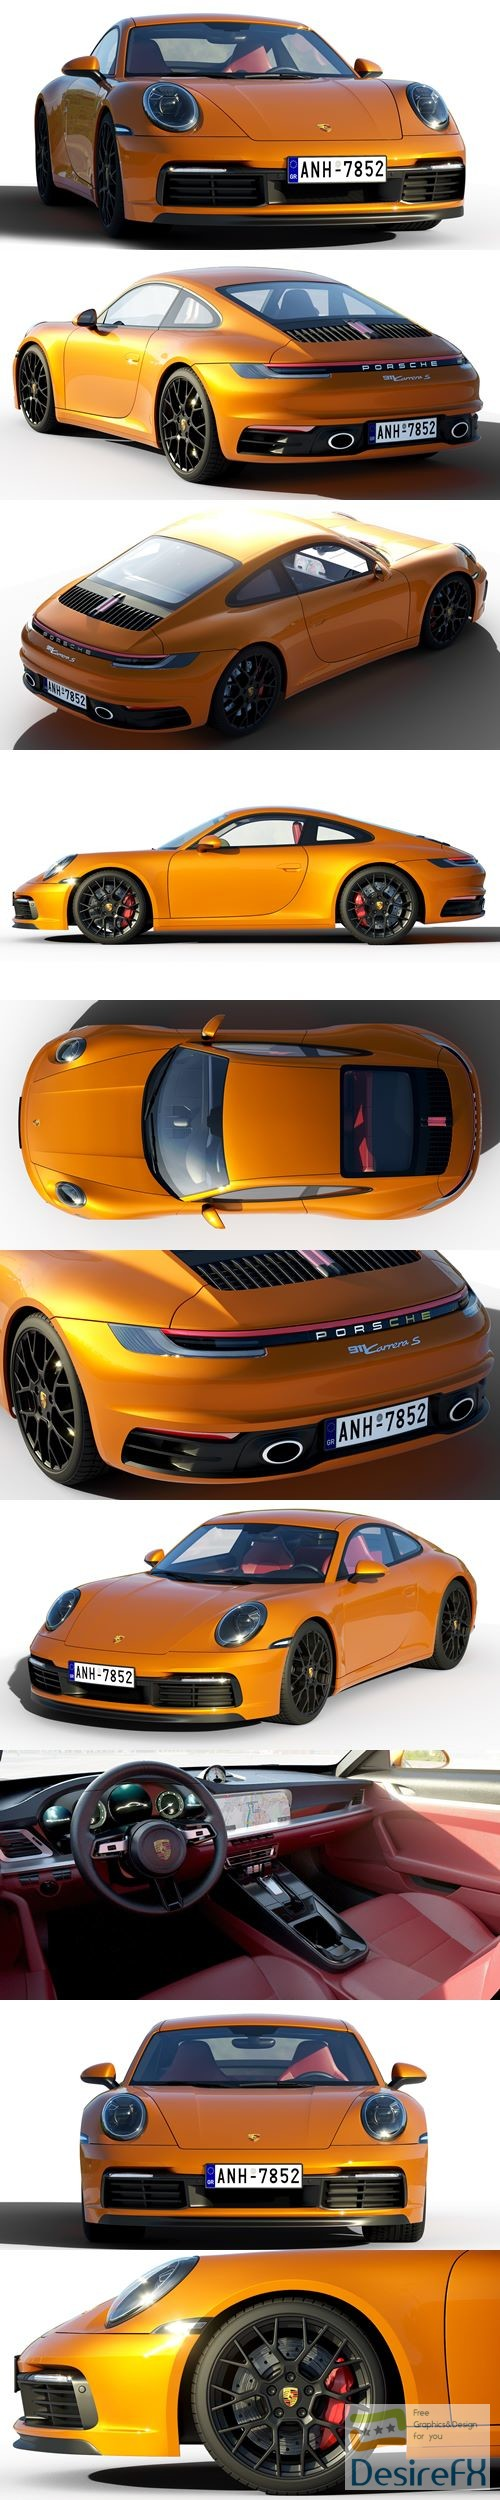 3d-models - Porsche 911 Carrera S 2019 3D Model